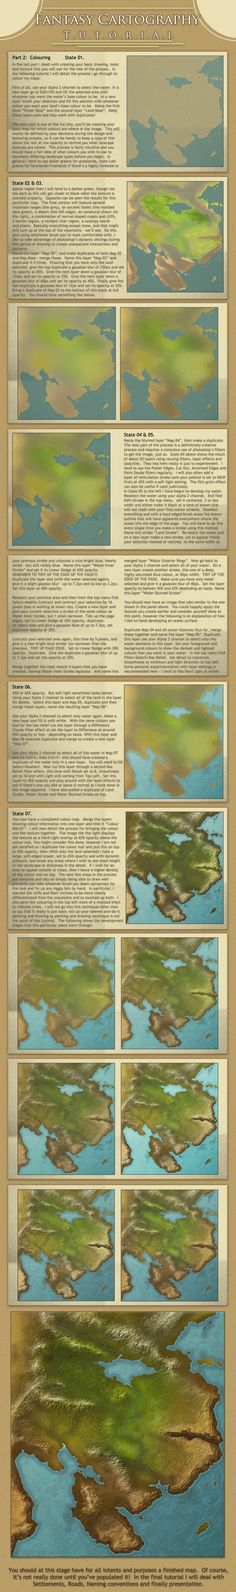 dungeons and dragons expert rulebook pdf